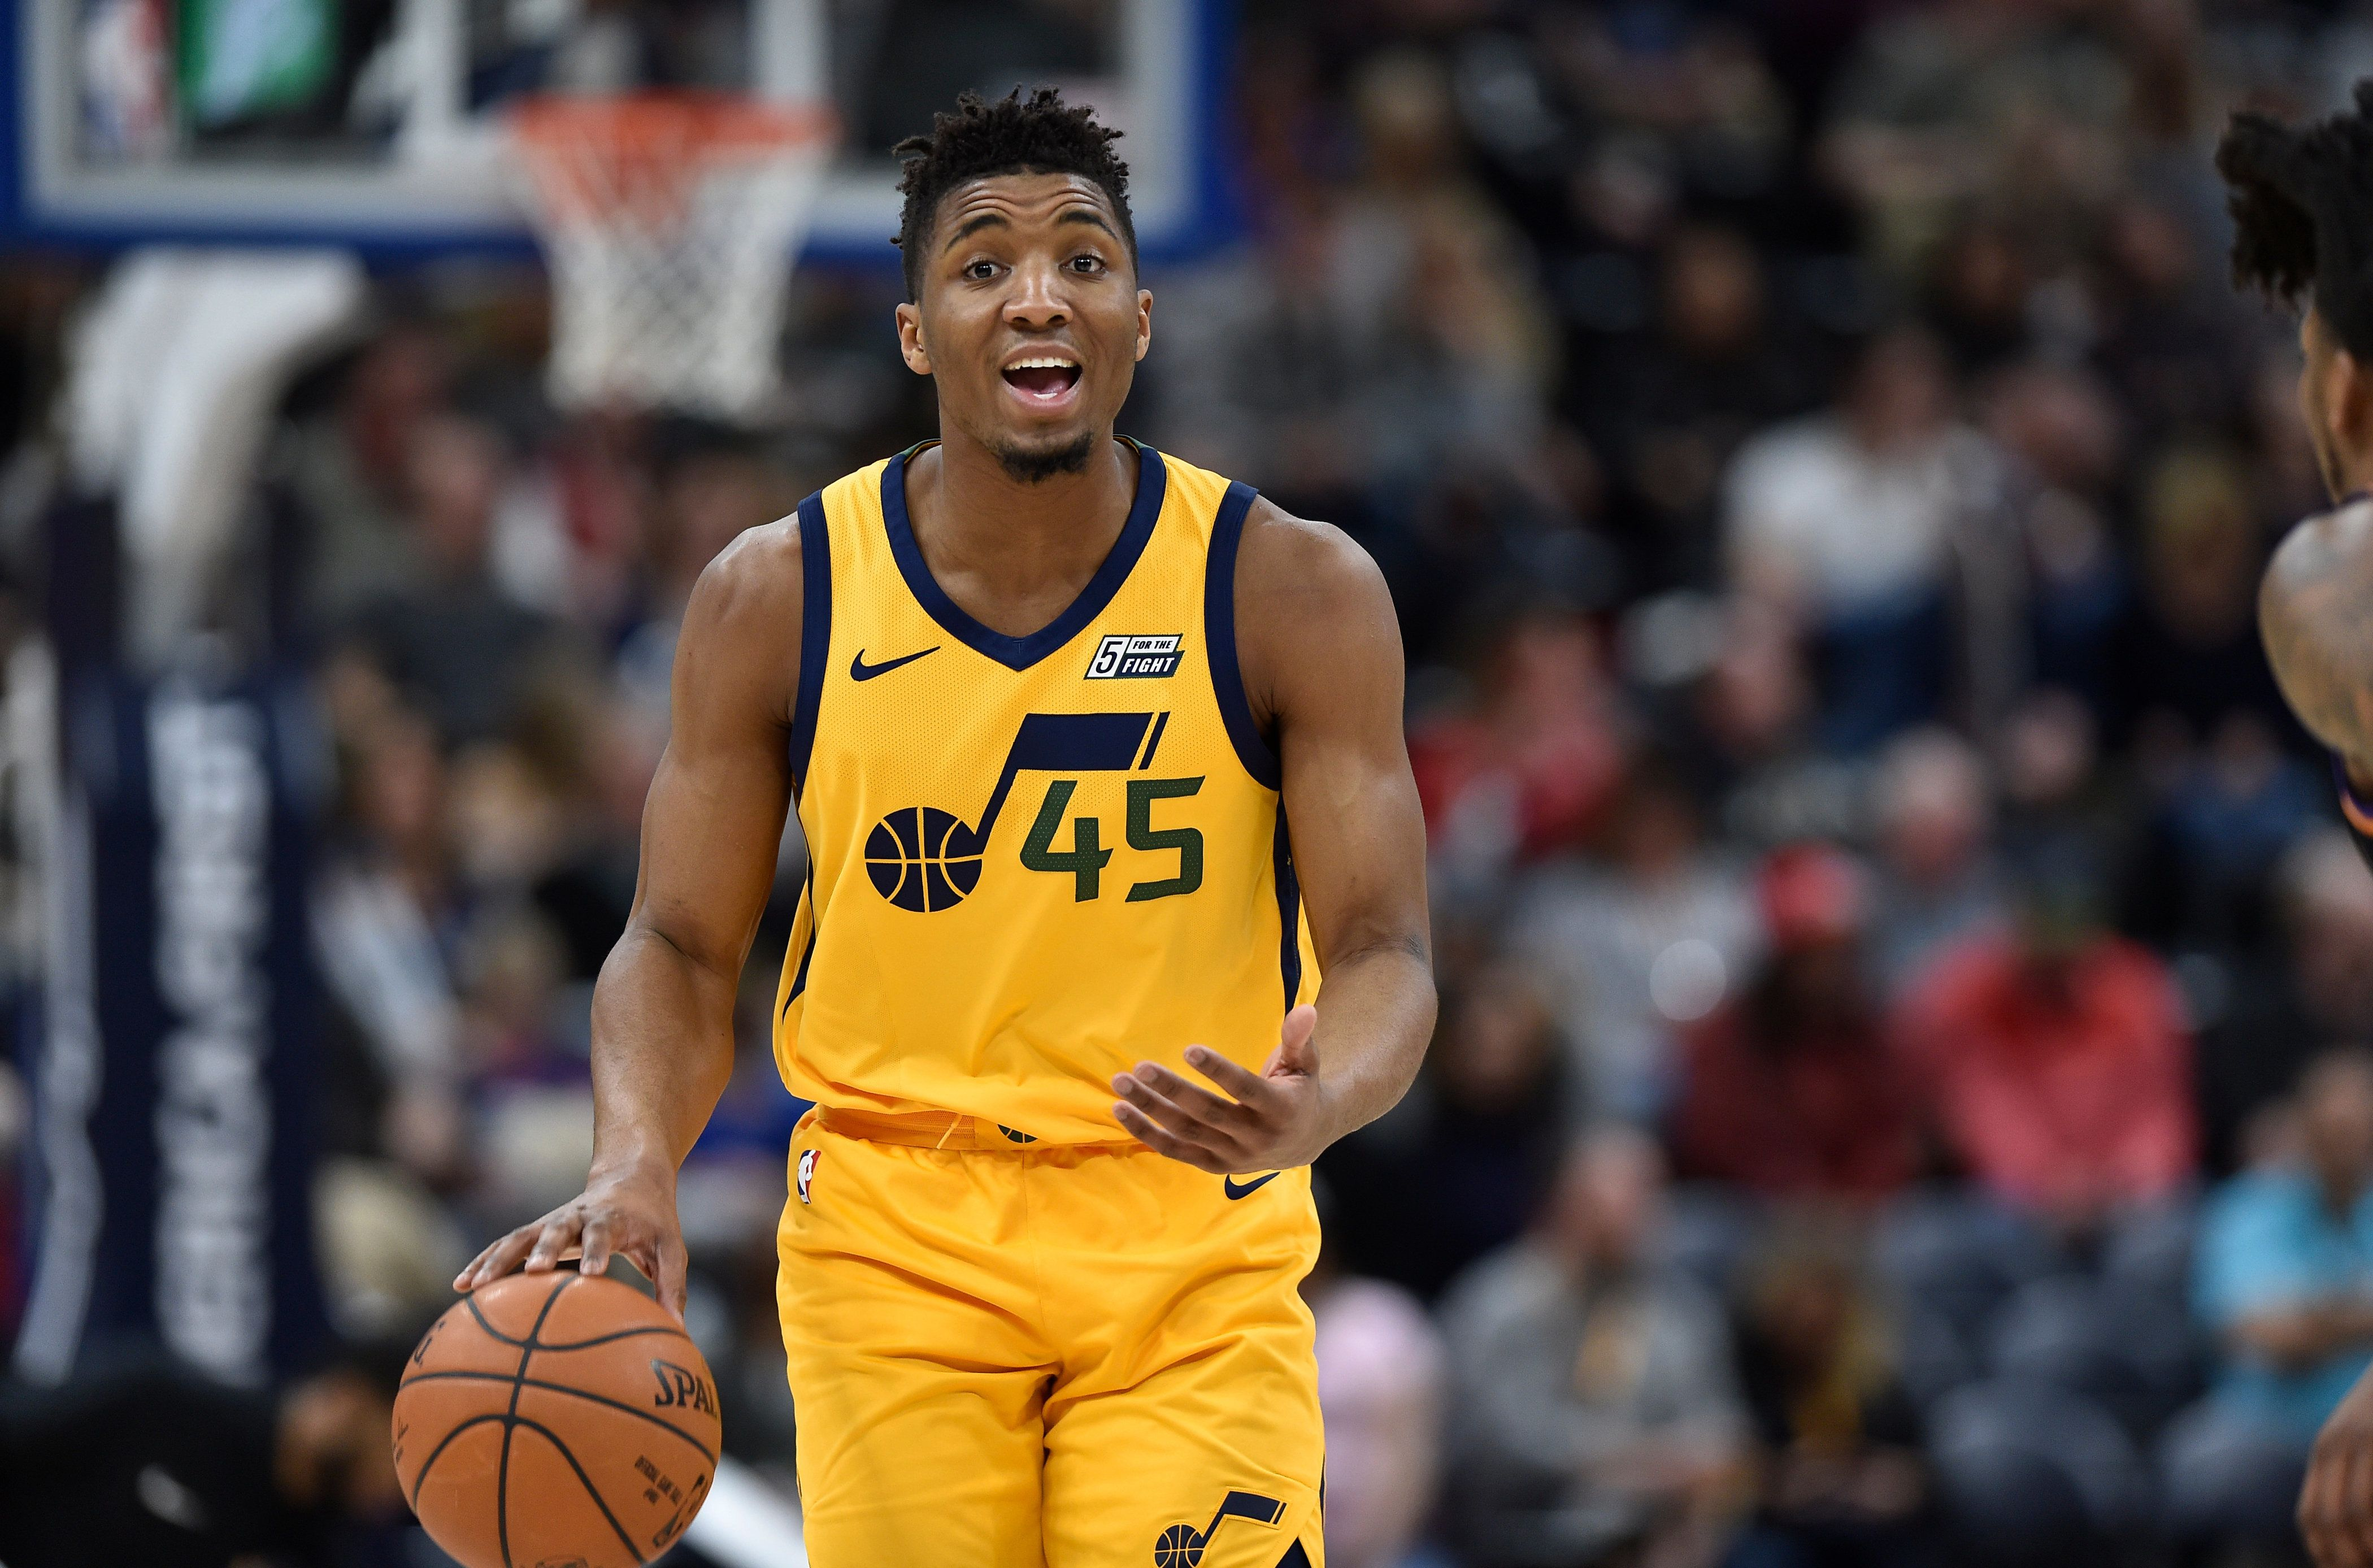 SALT LAKE CITY, UT - FEBRUARY 14: Donovan Mitchell #45 of the Utah Jazz brings the ball up court during the first half of a game against the Phoenix Suns at Vivint Smart Home Arena on February 14, 2018 in Salt Lake City, Utah. NOTE TO USER: User expressly acknowledges and agrees that, by downloading and or using this photograph, User is consenting to the terms and conditions of the Getty Images License Agreement. (Photo by Gene Sweeney Jr./Getty Images)